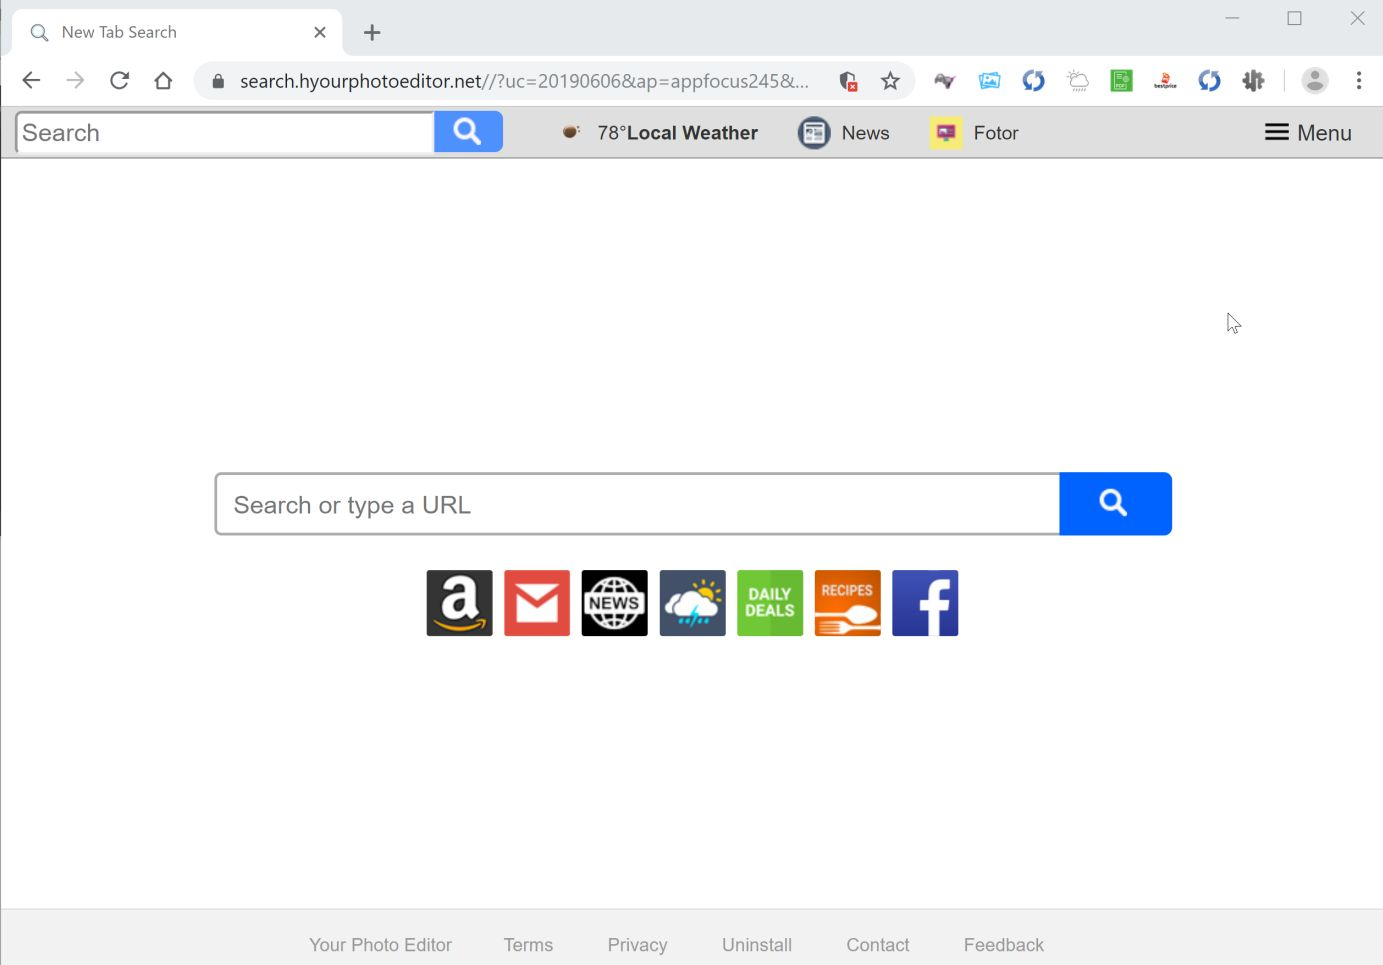 Image: Google Chrome is redirected to Your Photo Editor New Tab